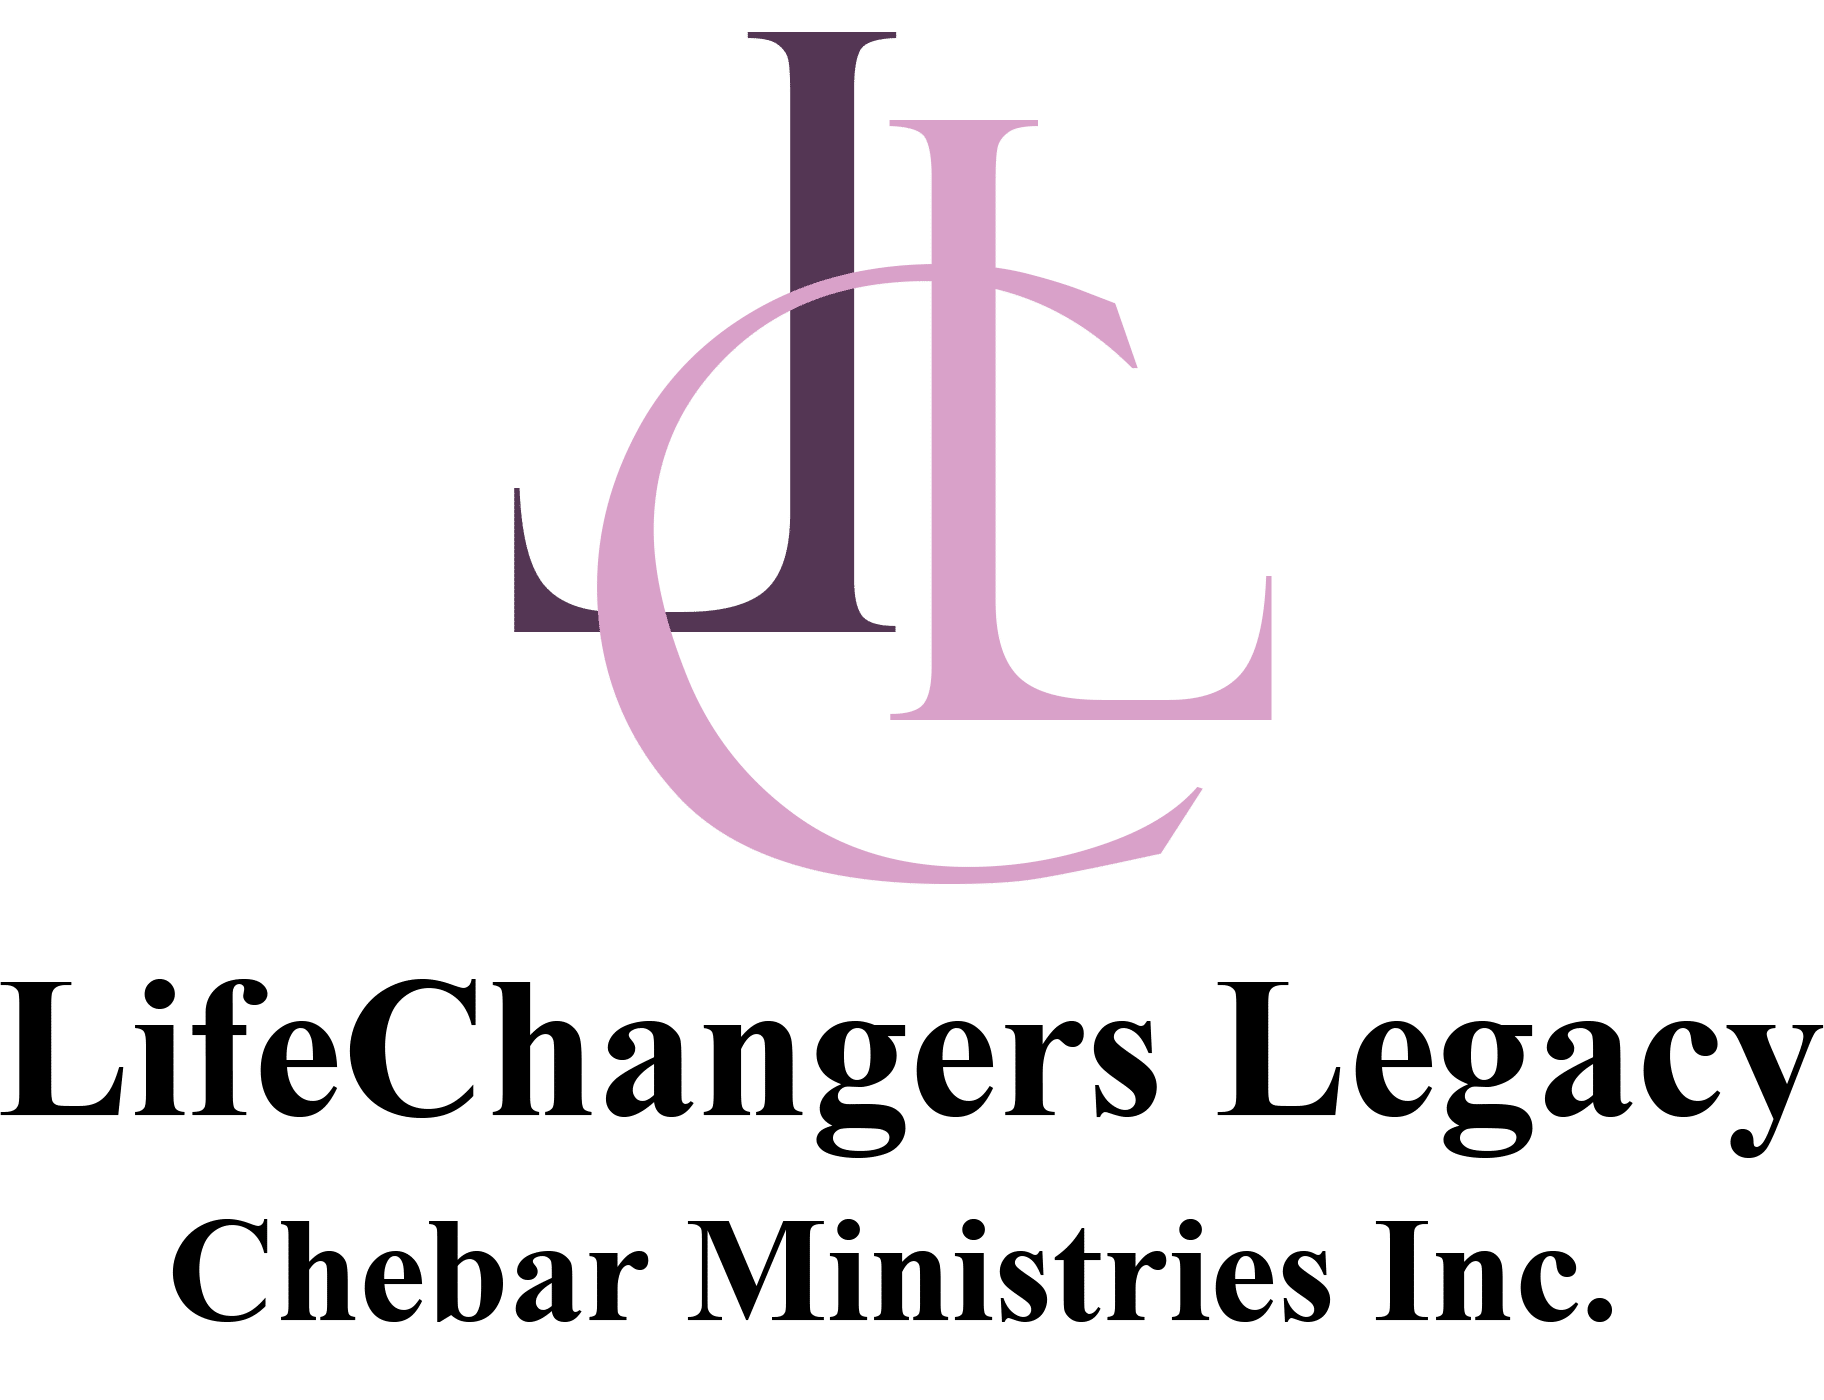 LifeChangersLegacy